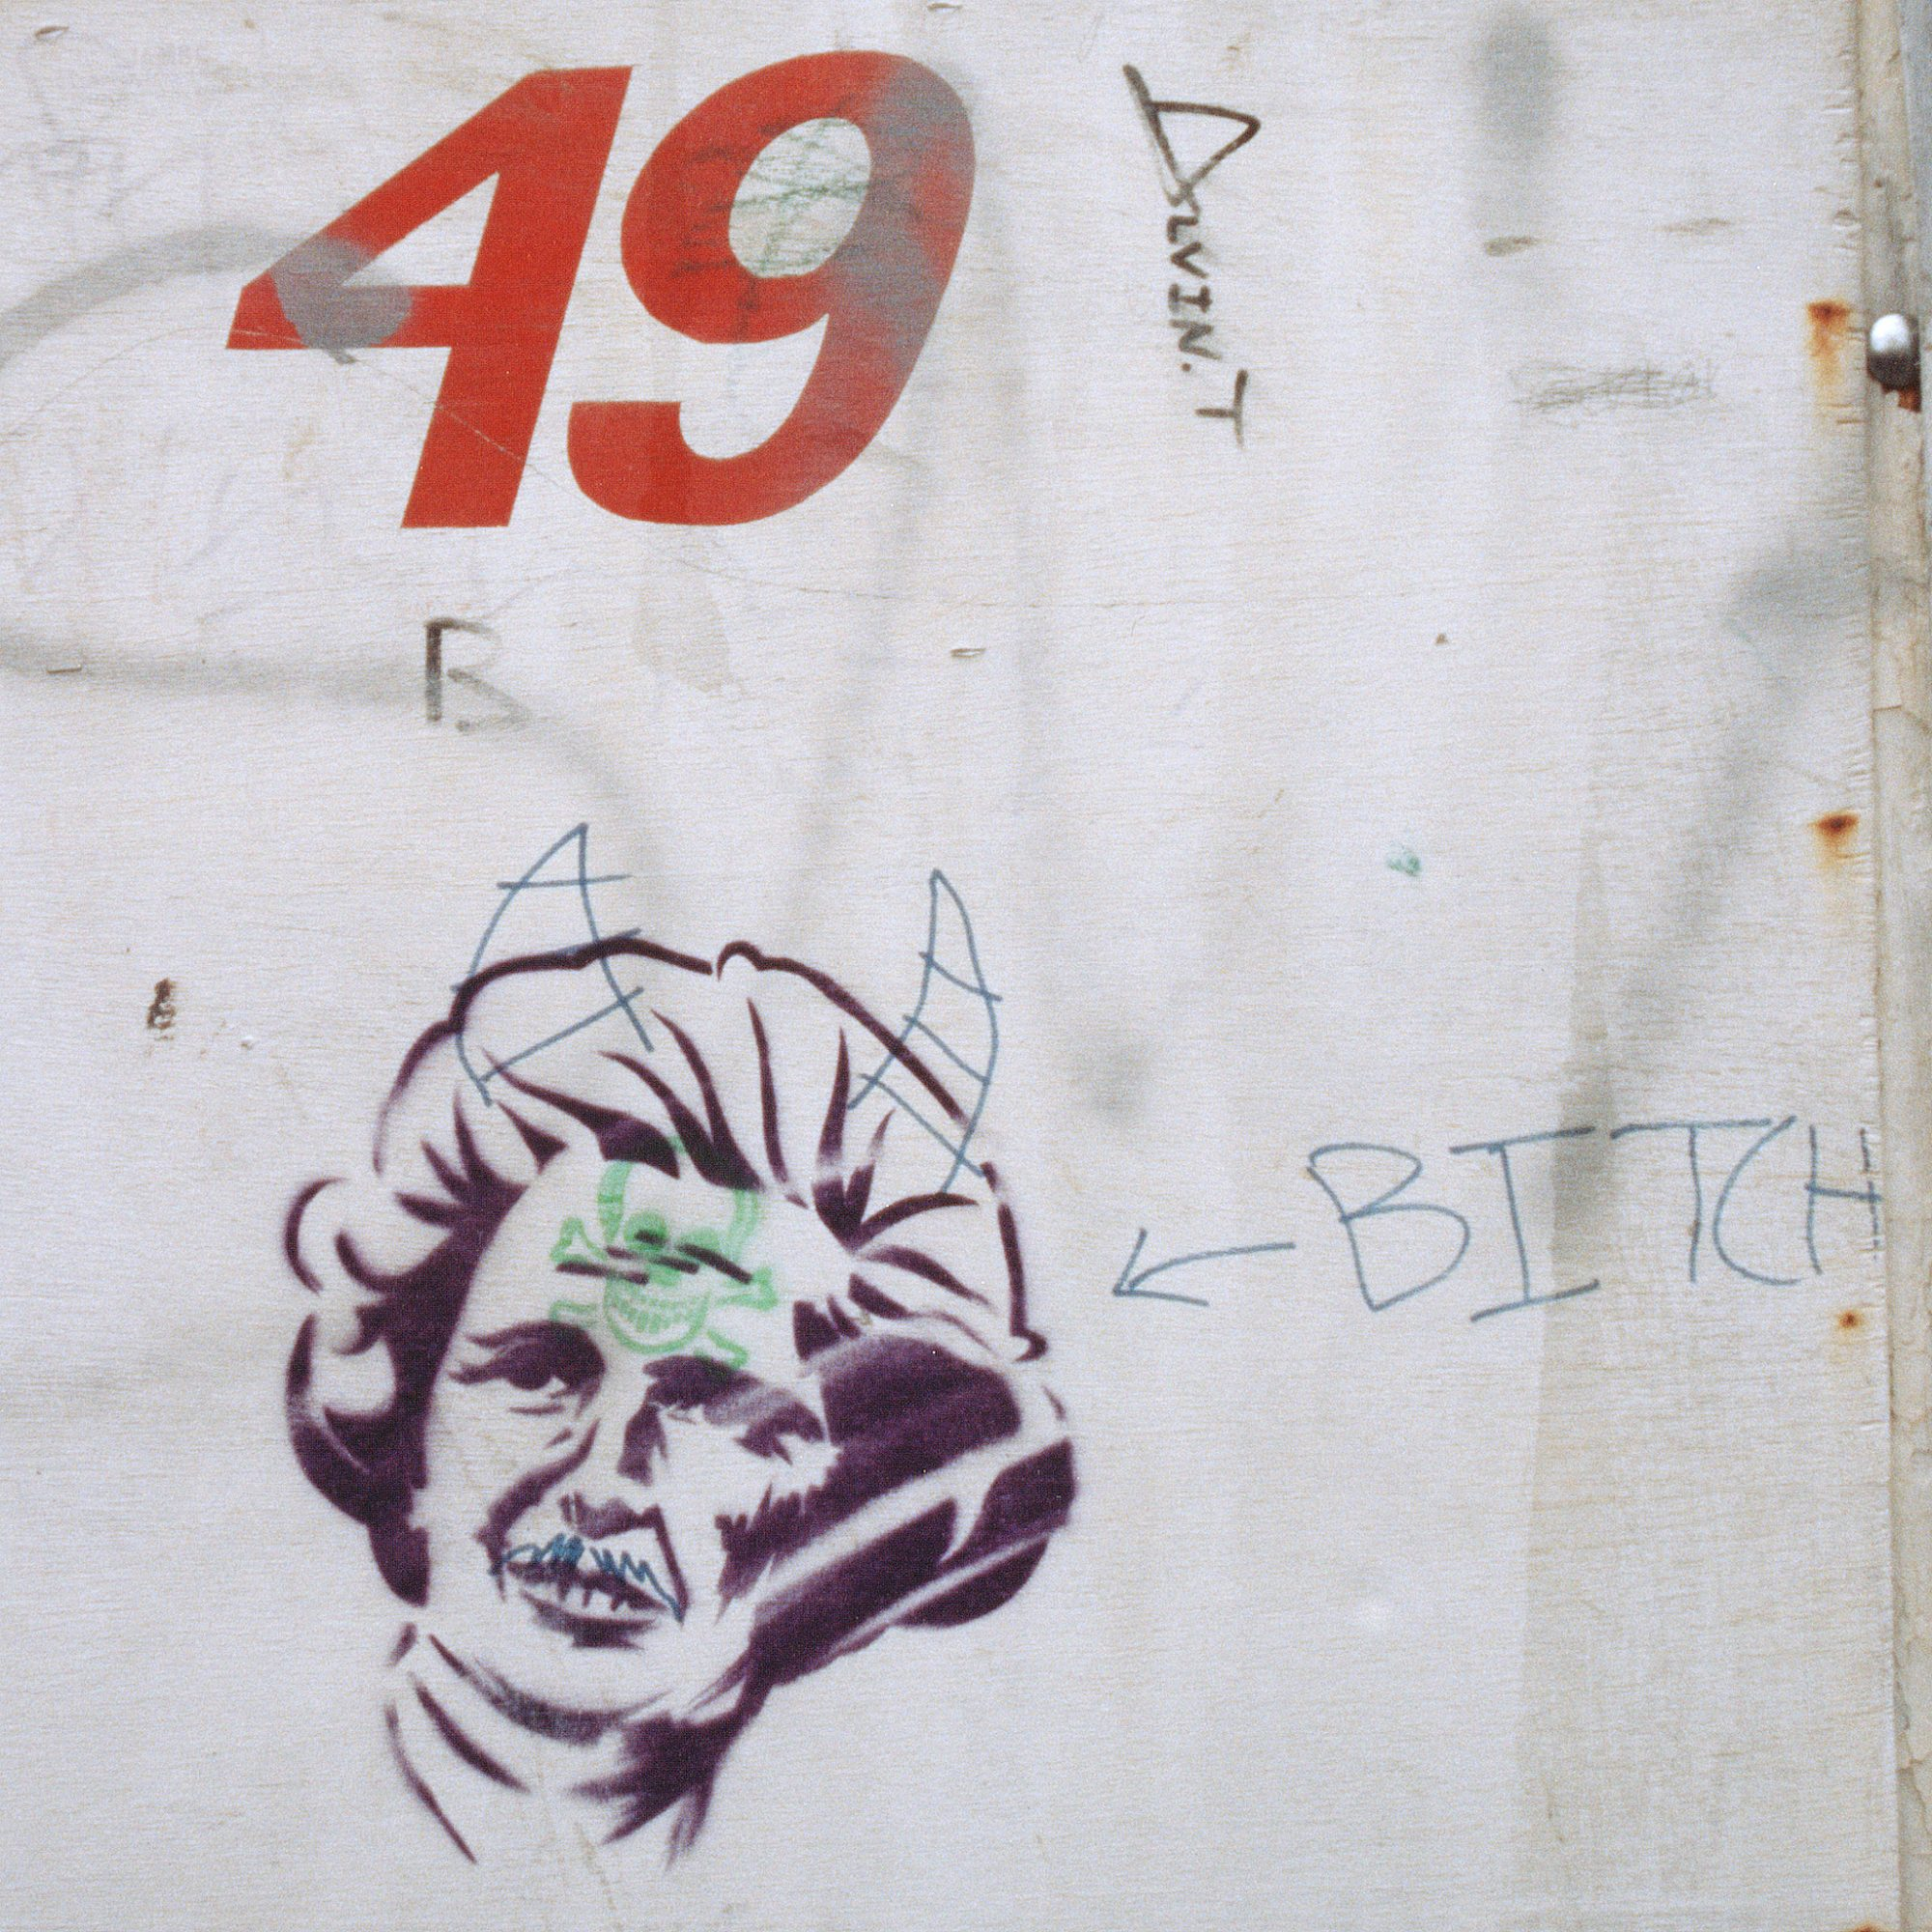 Margaret Thatcher stencilled street art captured in London